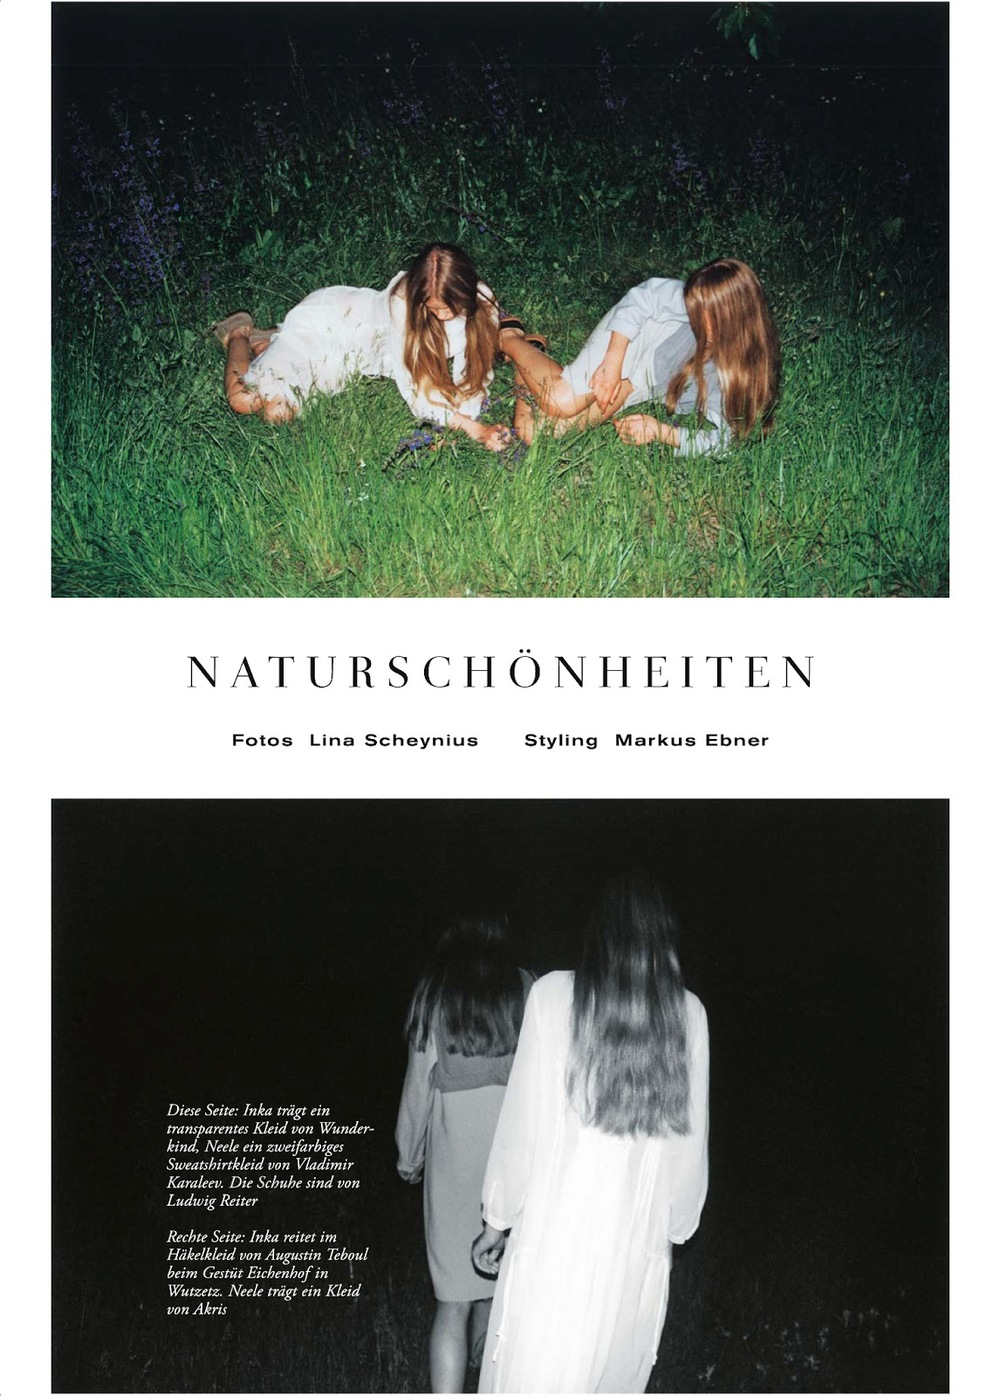 Inka-and-Neele-Hoeper-by-Lina-Scheynius-for-Zeit-Magazin-July-4-2013-1.jpg